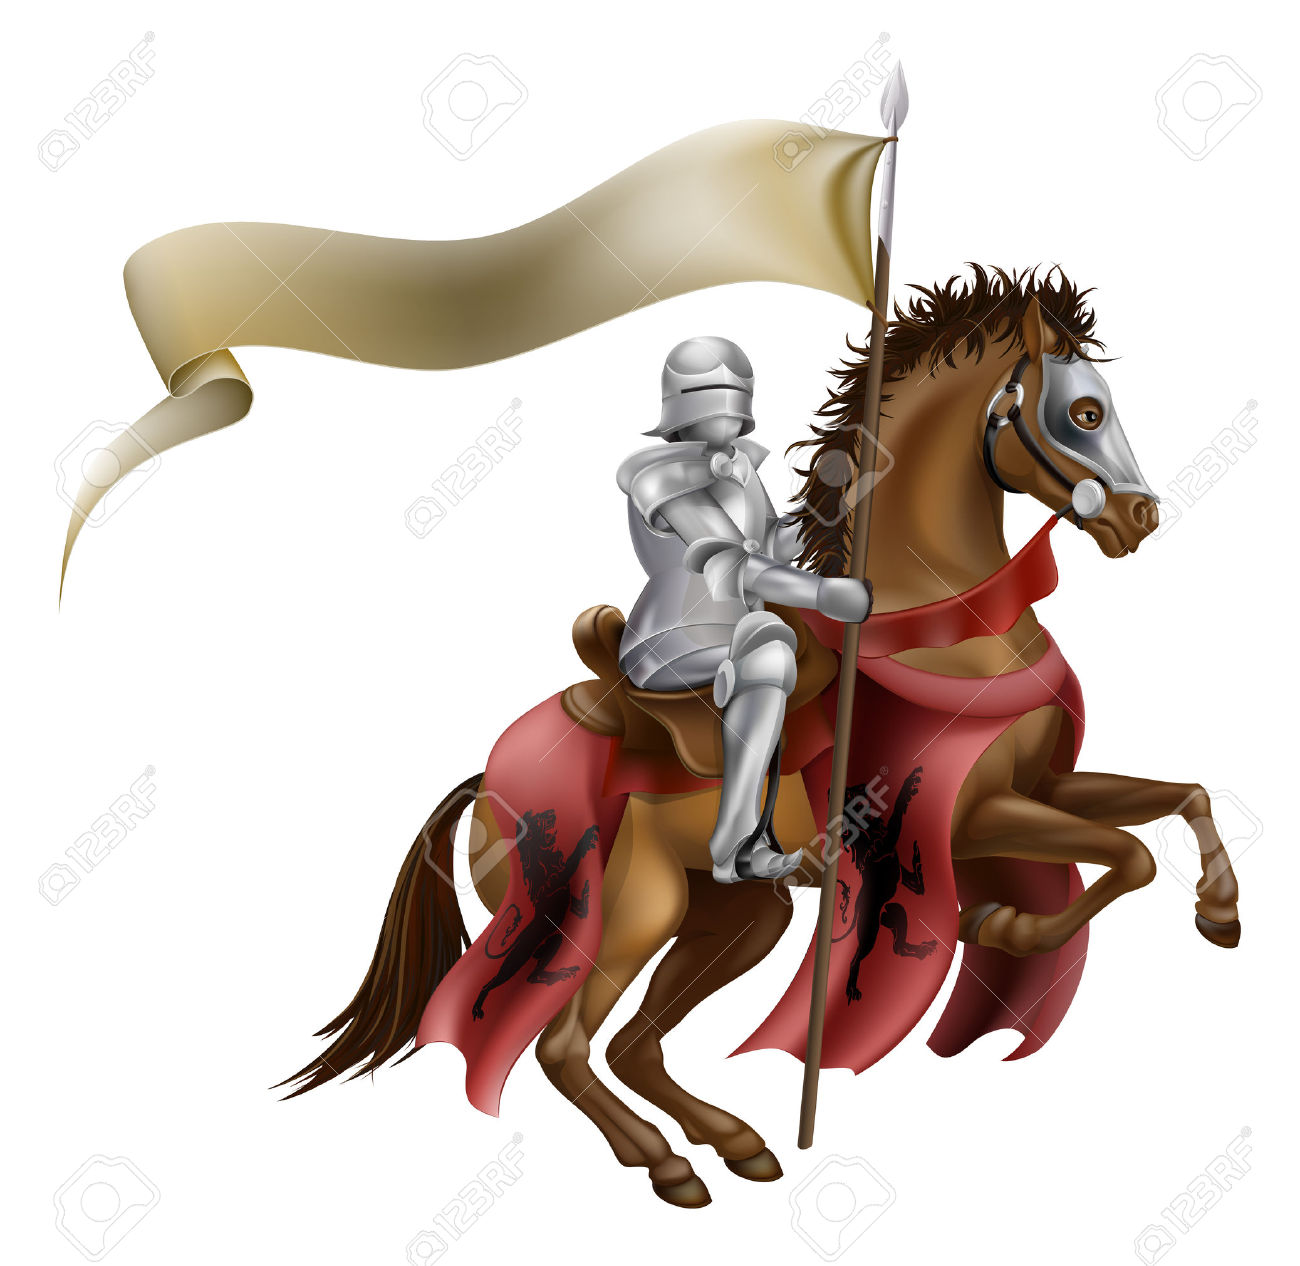 Knights holding flag clipart.